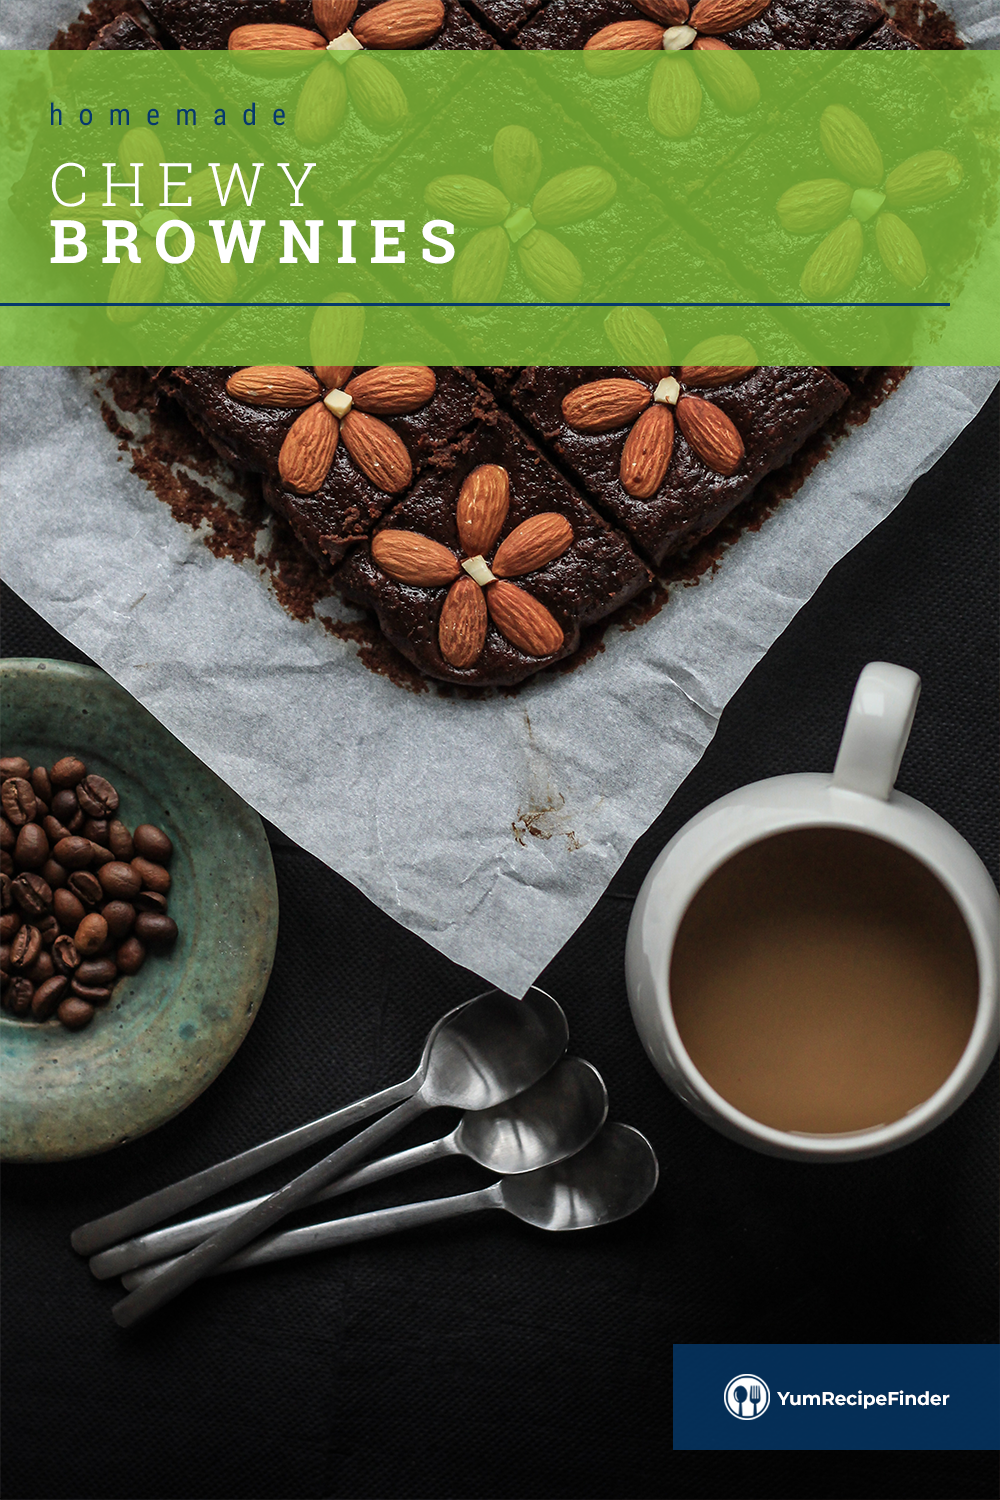 Make a chewy, chocolate brownie recipe for any occasion